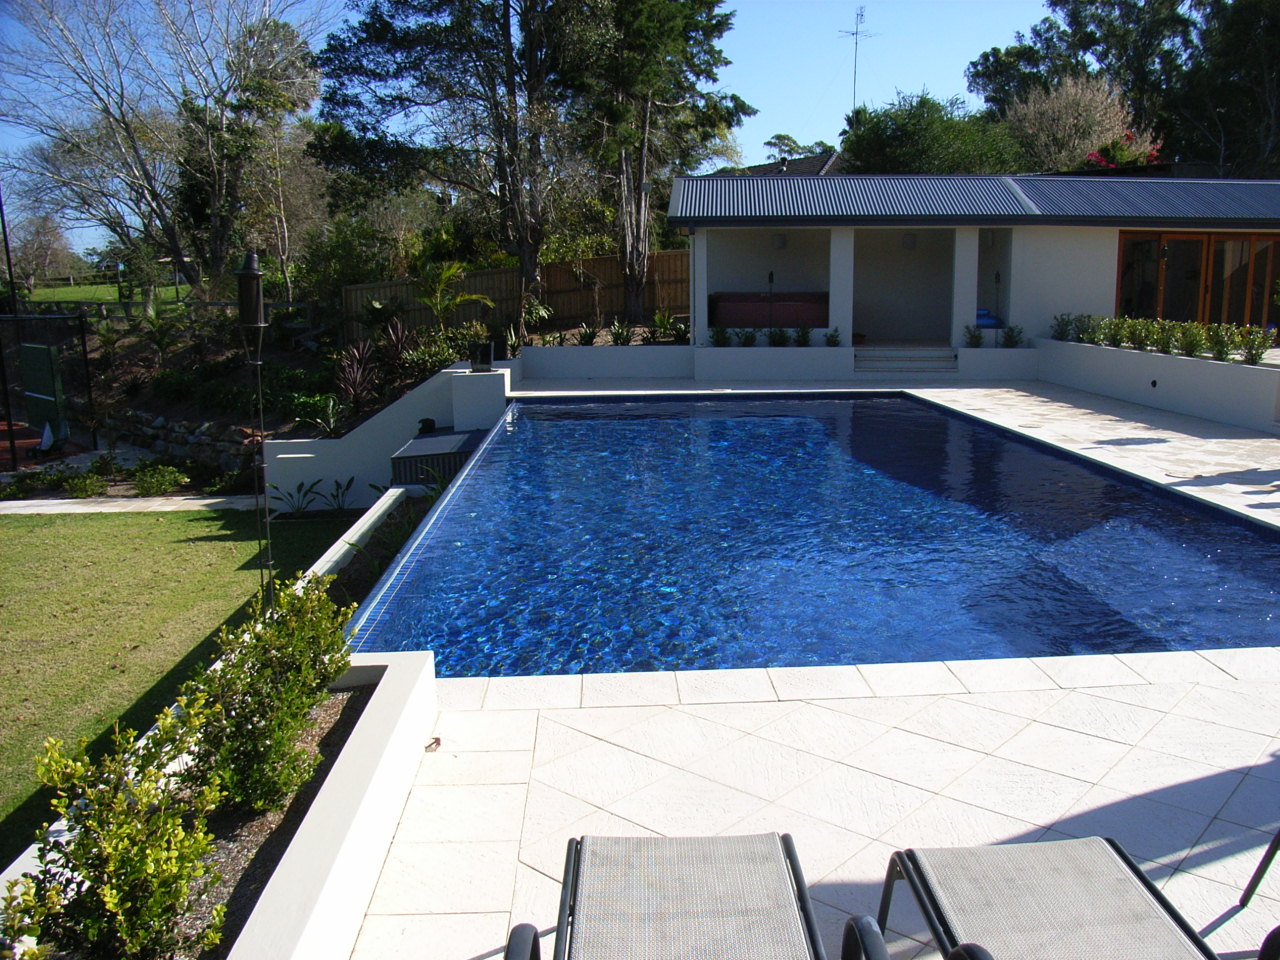 Fresh The Pool Design & Construction - General - Blog|| Tina C HP05